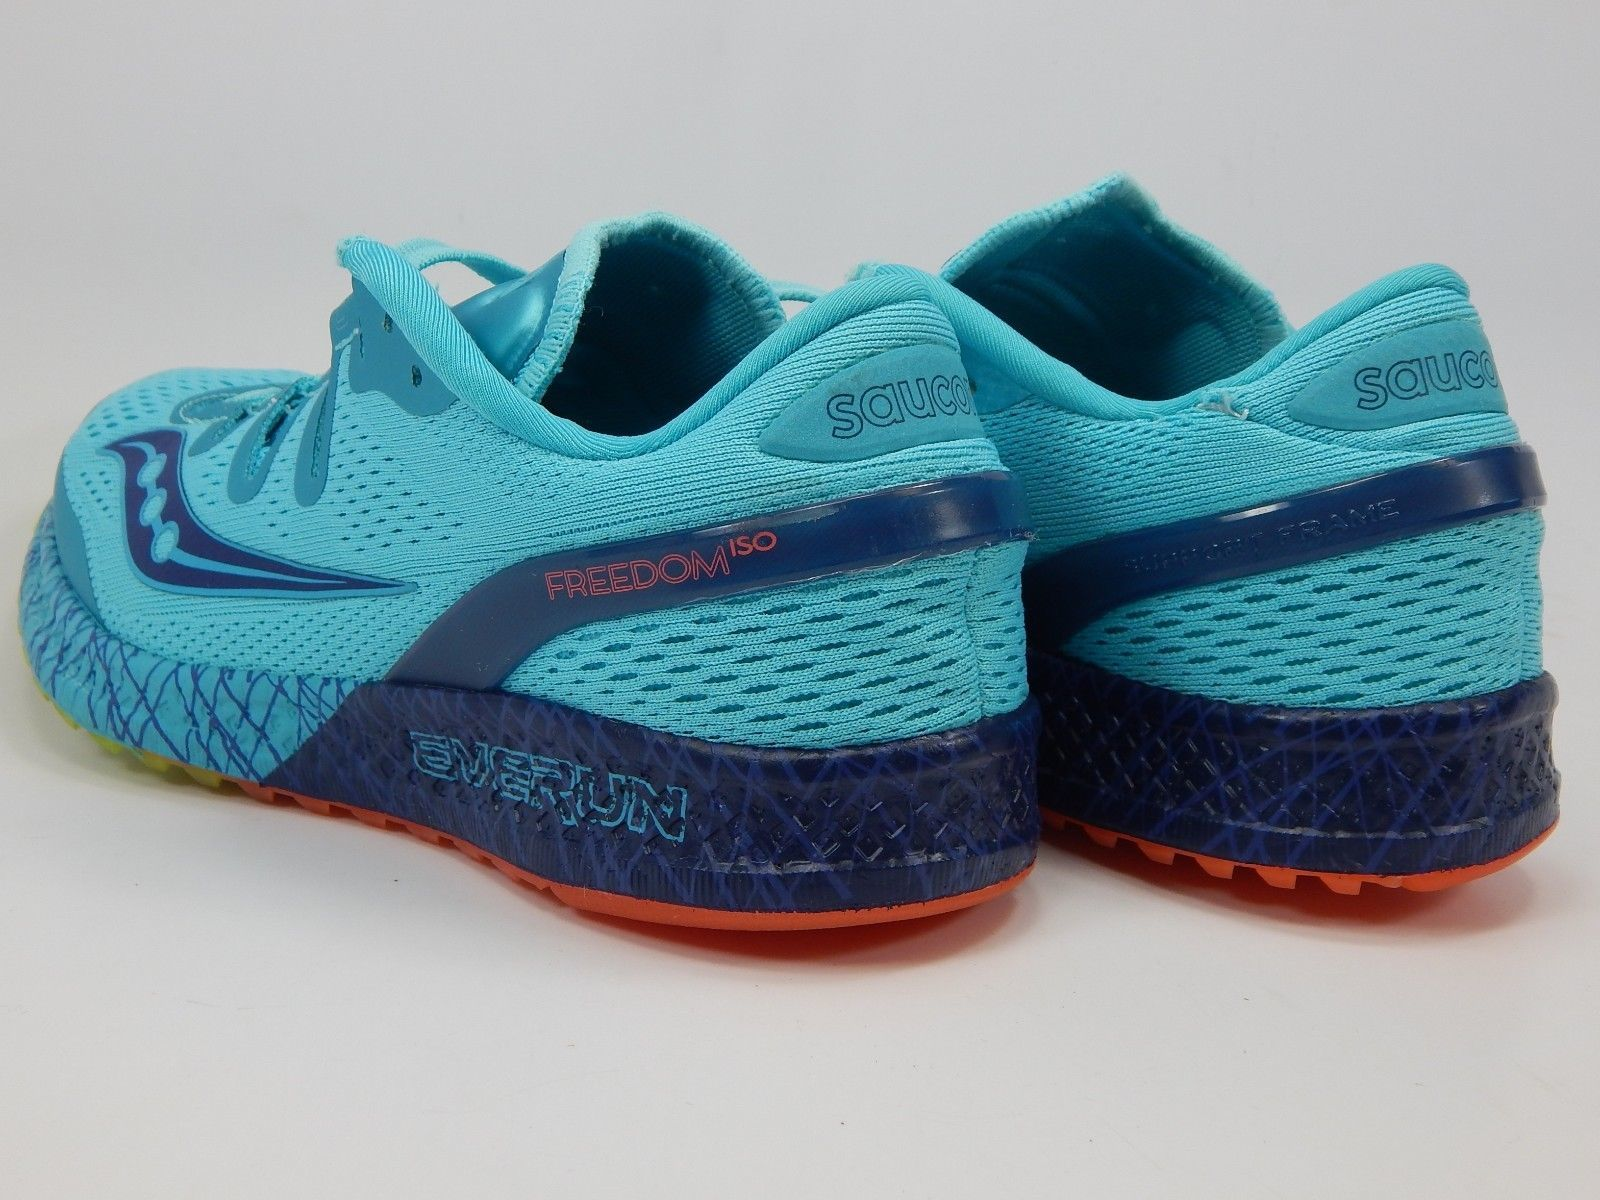 Saucony Freedom ISO Size 7.5 M (B) EU 38.5 Women's Running Shoes Blue S10355-3